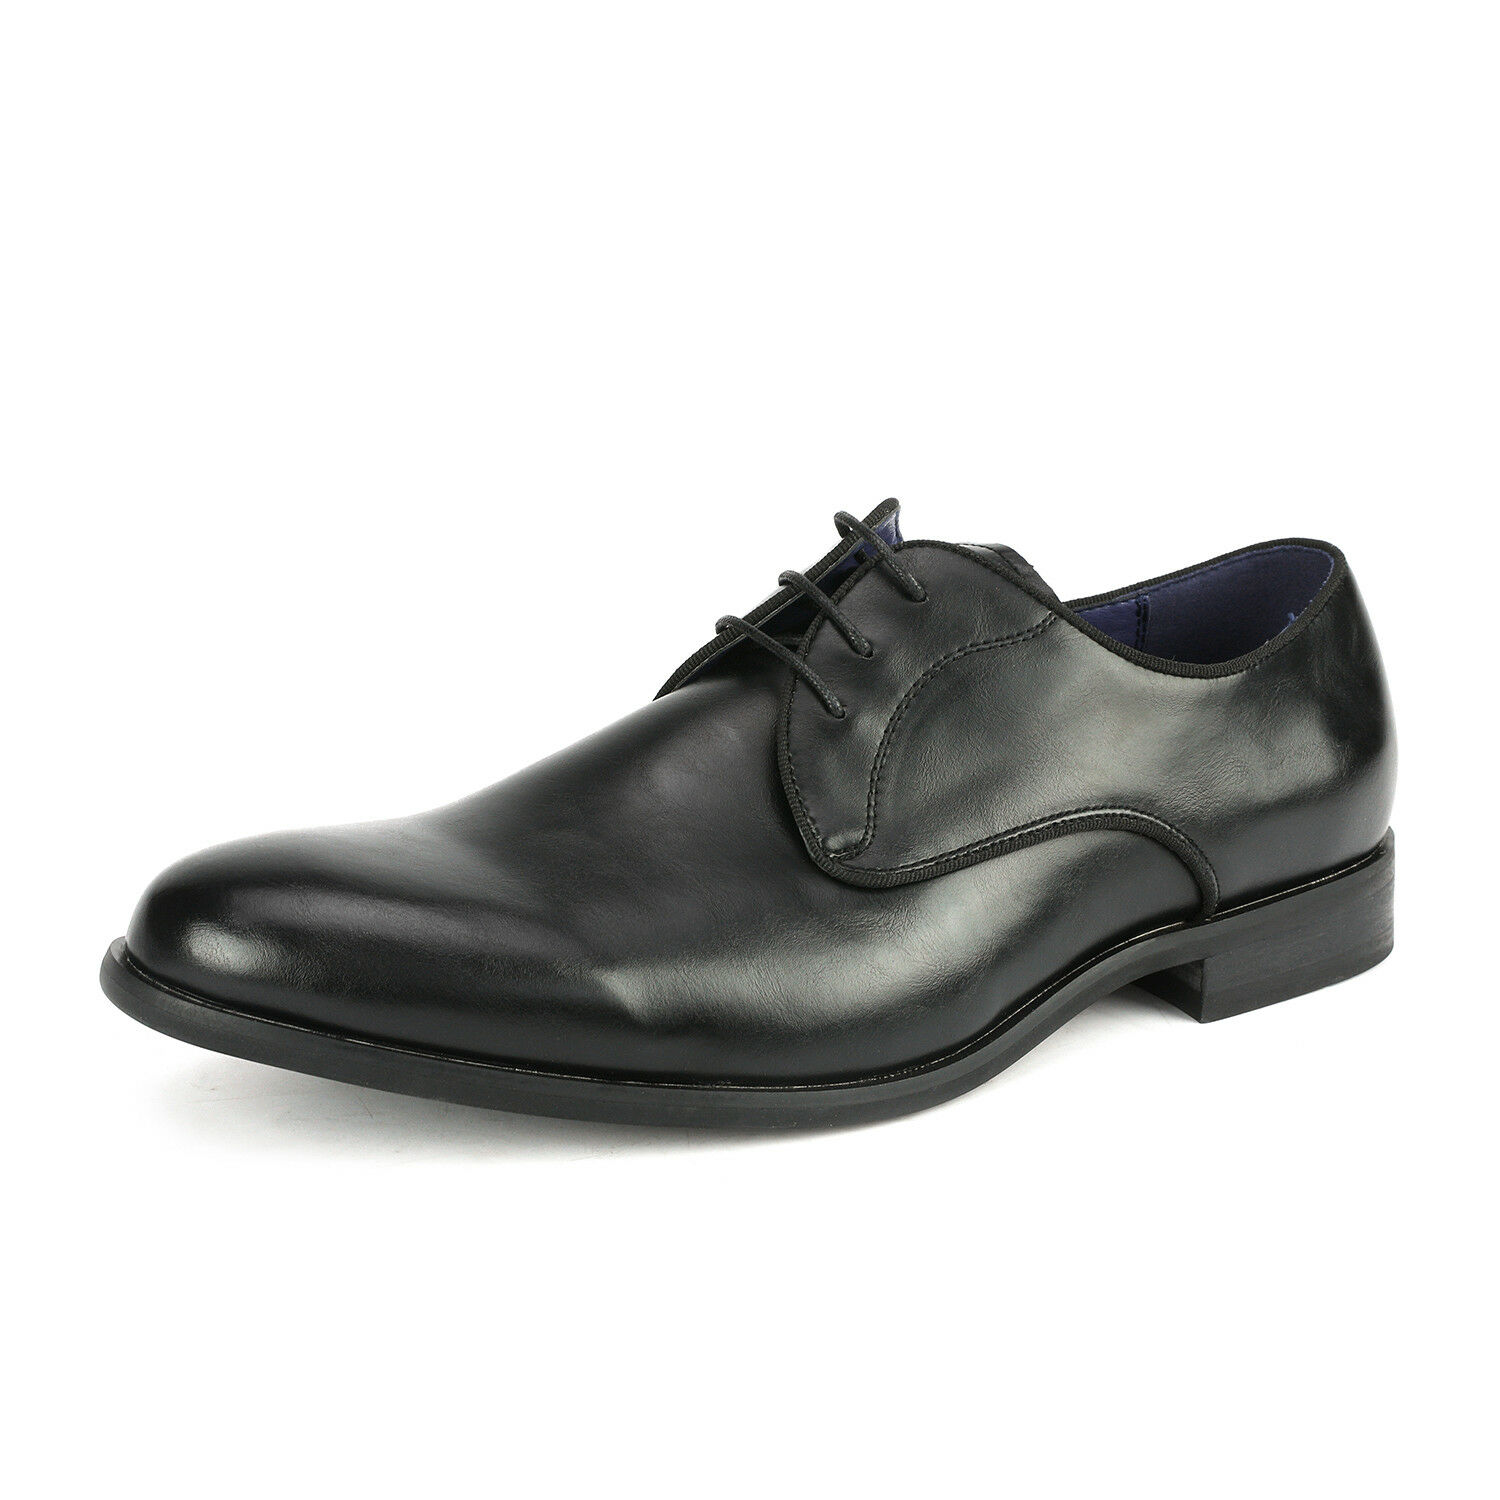 Bruno Marc Men Florence Faux Leather Lined Formal Business Oxfords Dress shoes